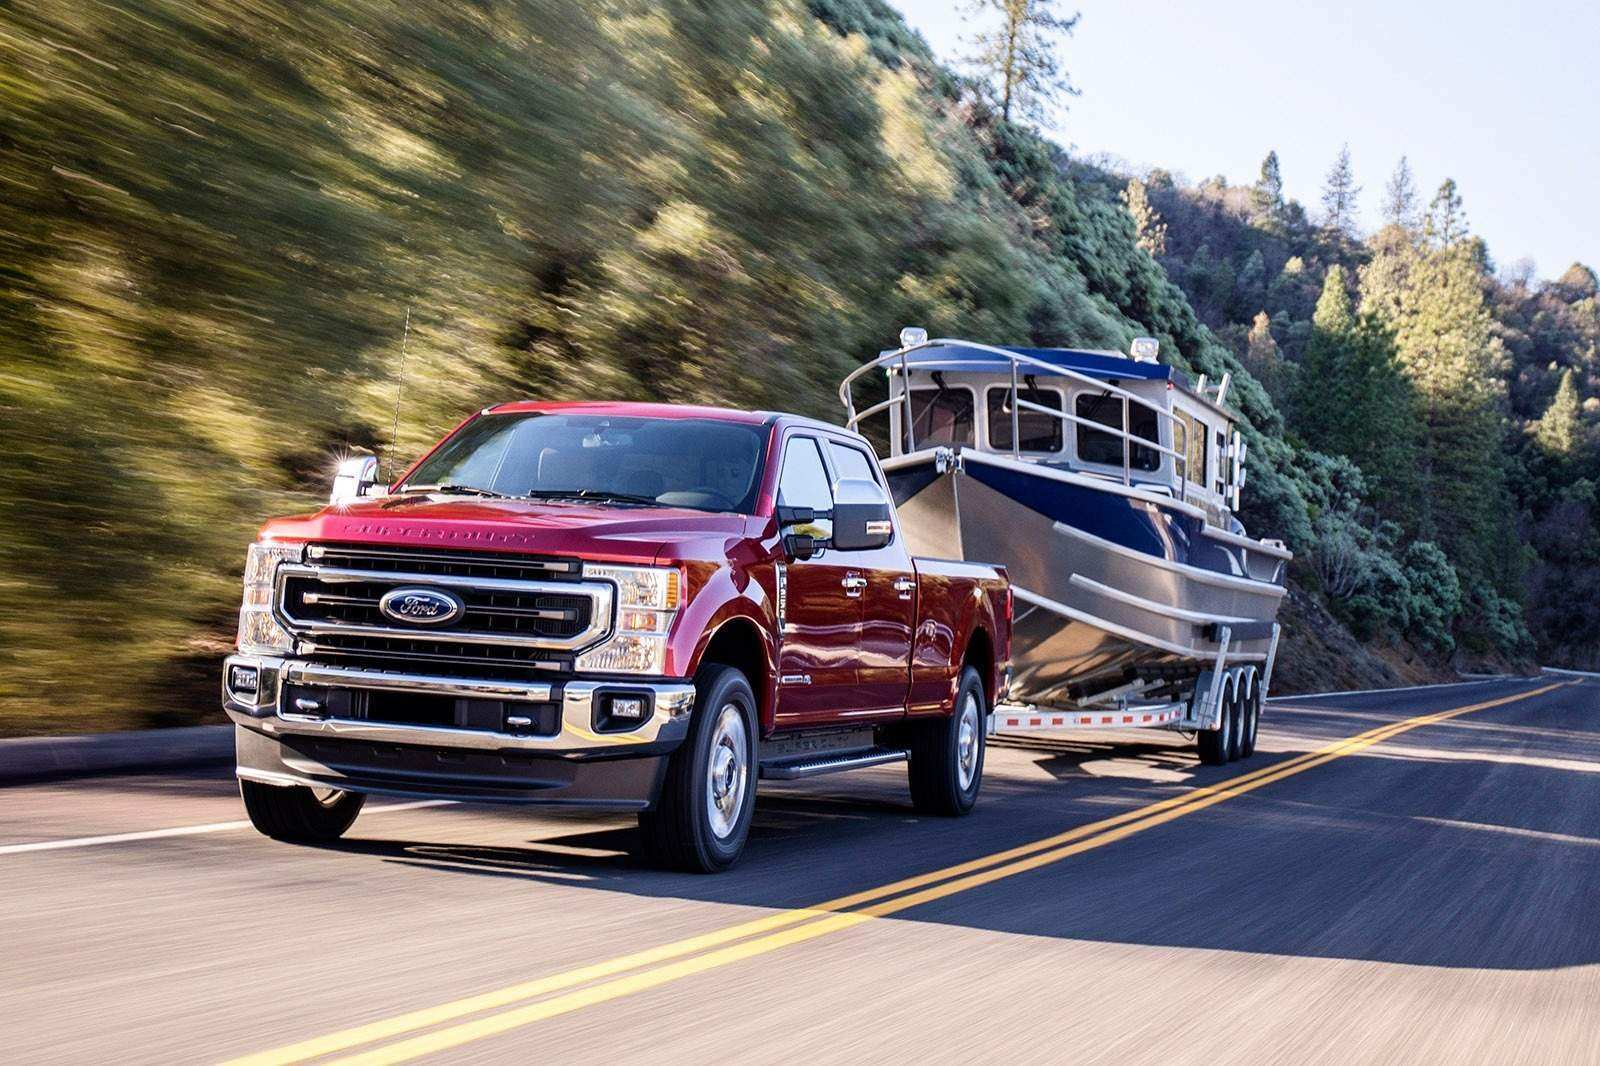 62 New 2020 Ford F350 Diesel Price